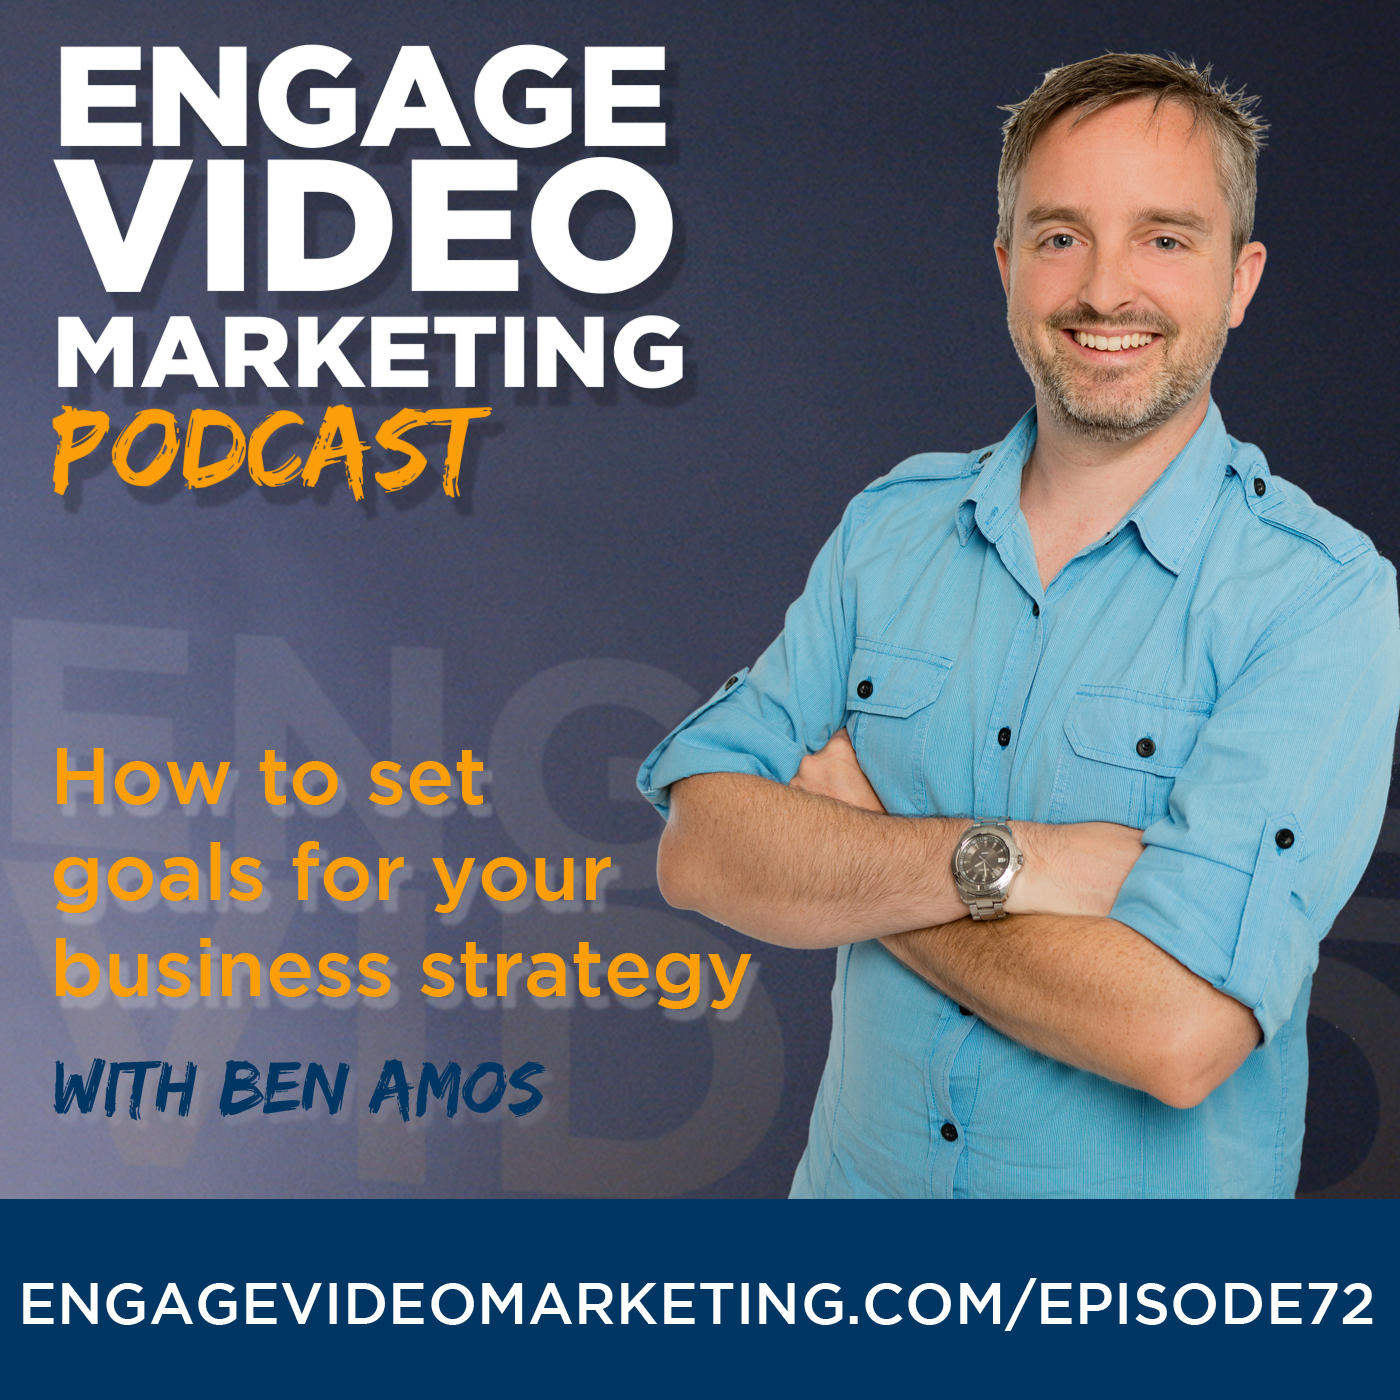 How to set goals for your video marketing strategy